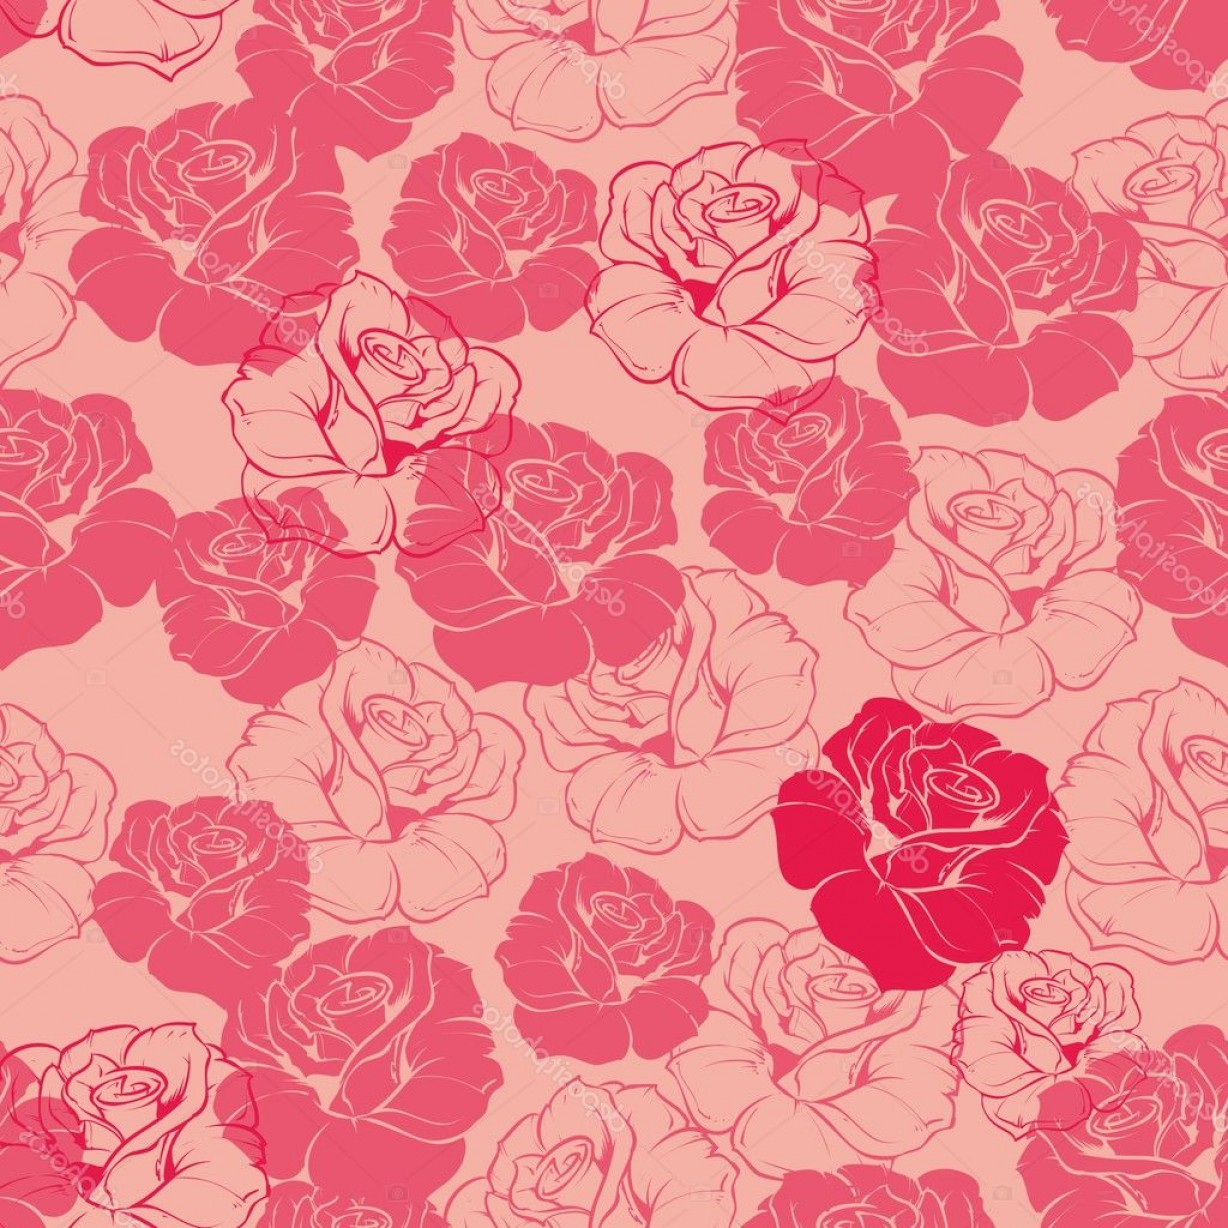 Free Vintage Vector Desktop Wallpaper: Stock Illustration Seamless Vector Pink And Red